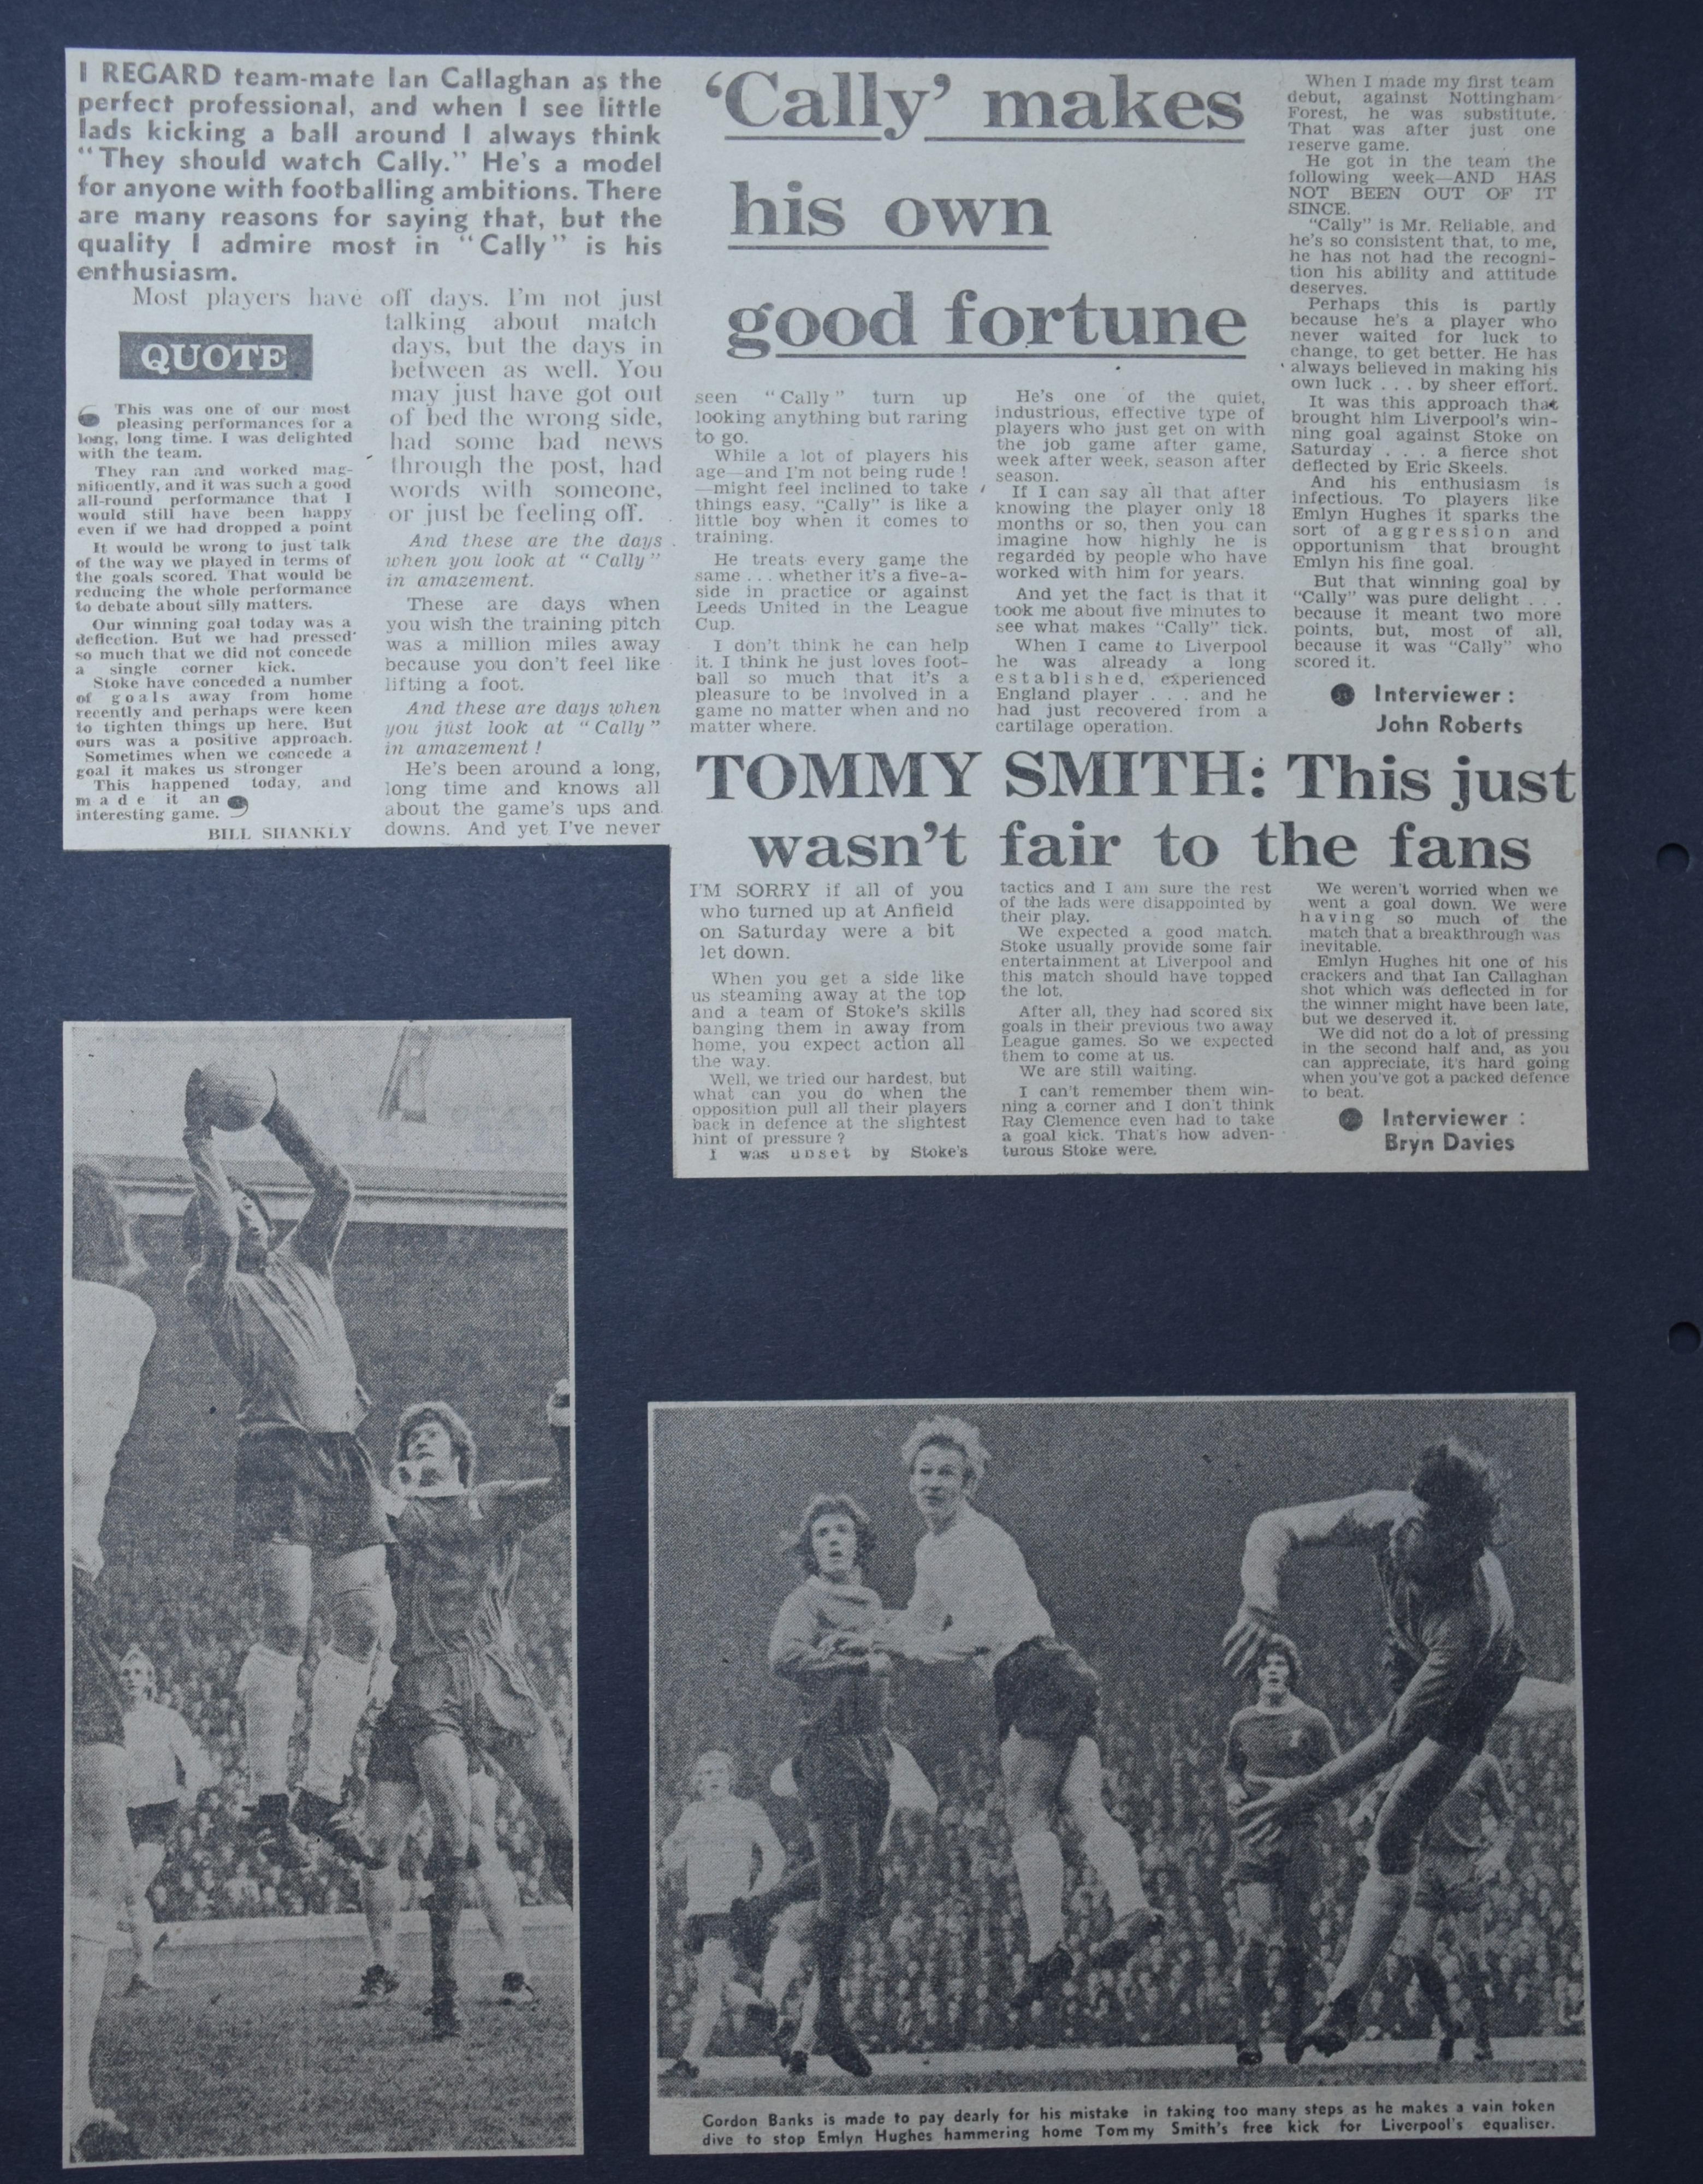 It wasn't fair on the fans - 21 October 1972